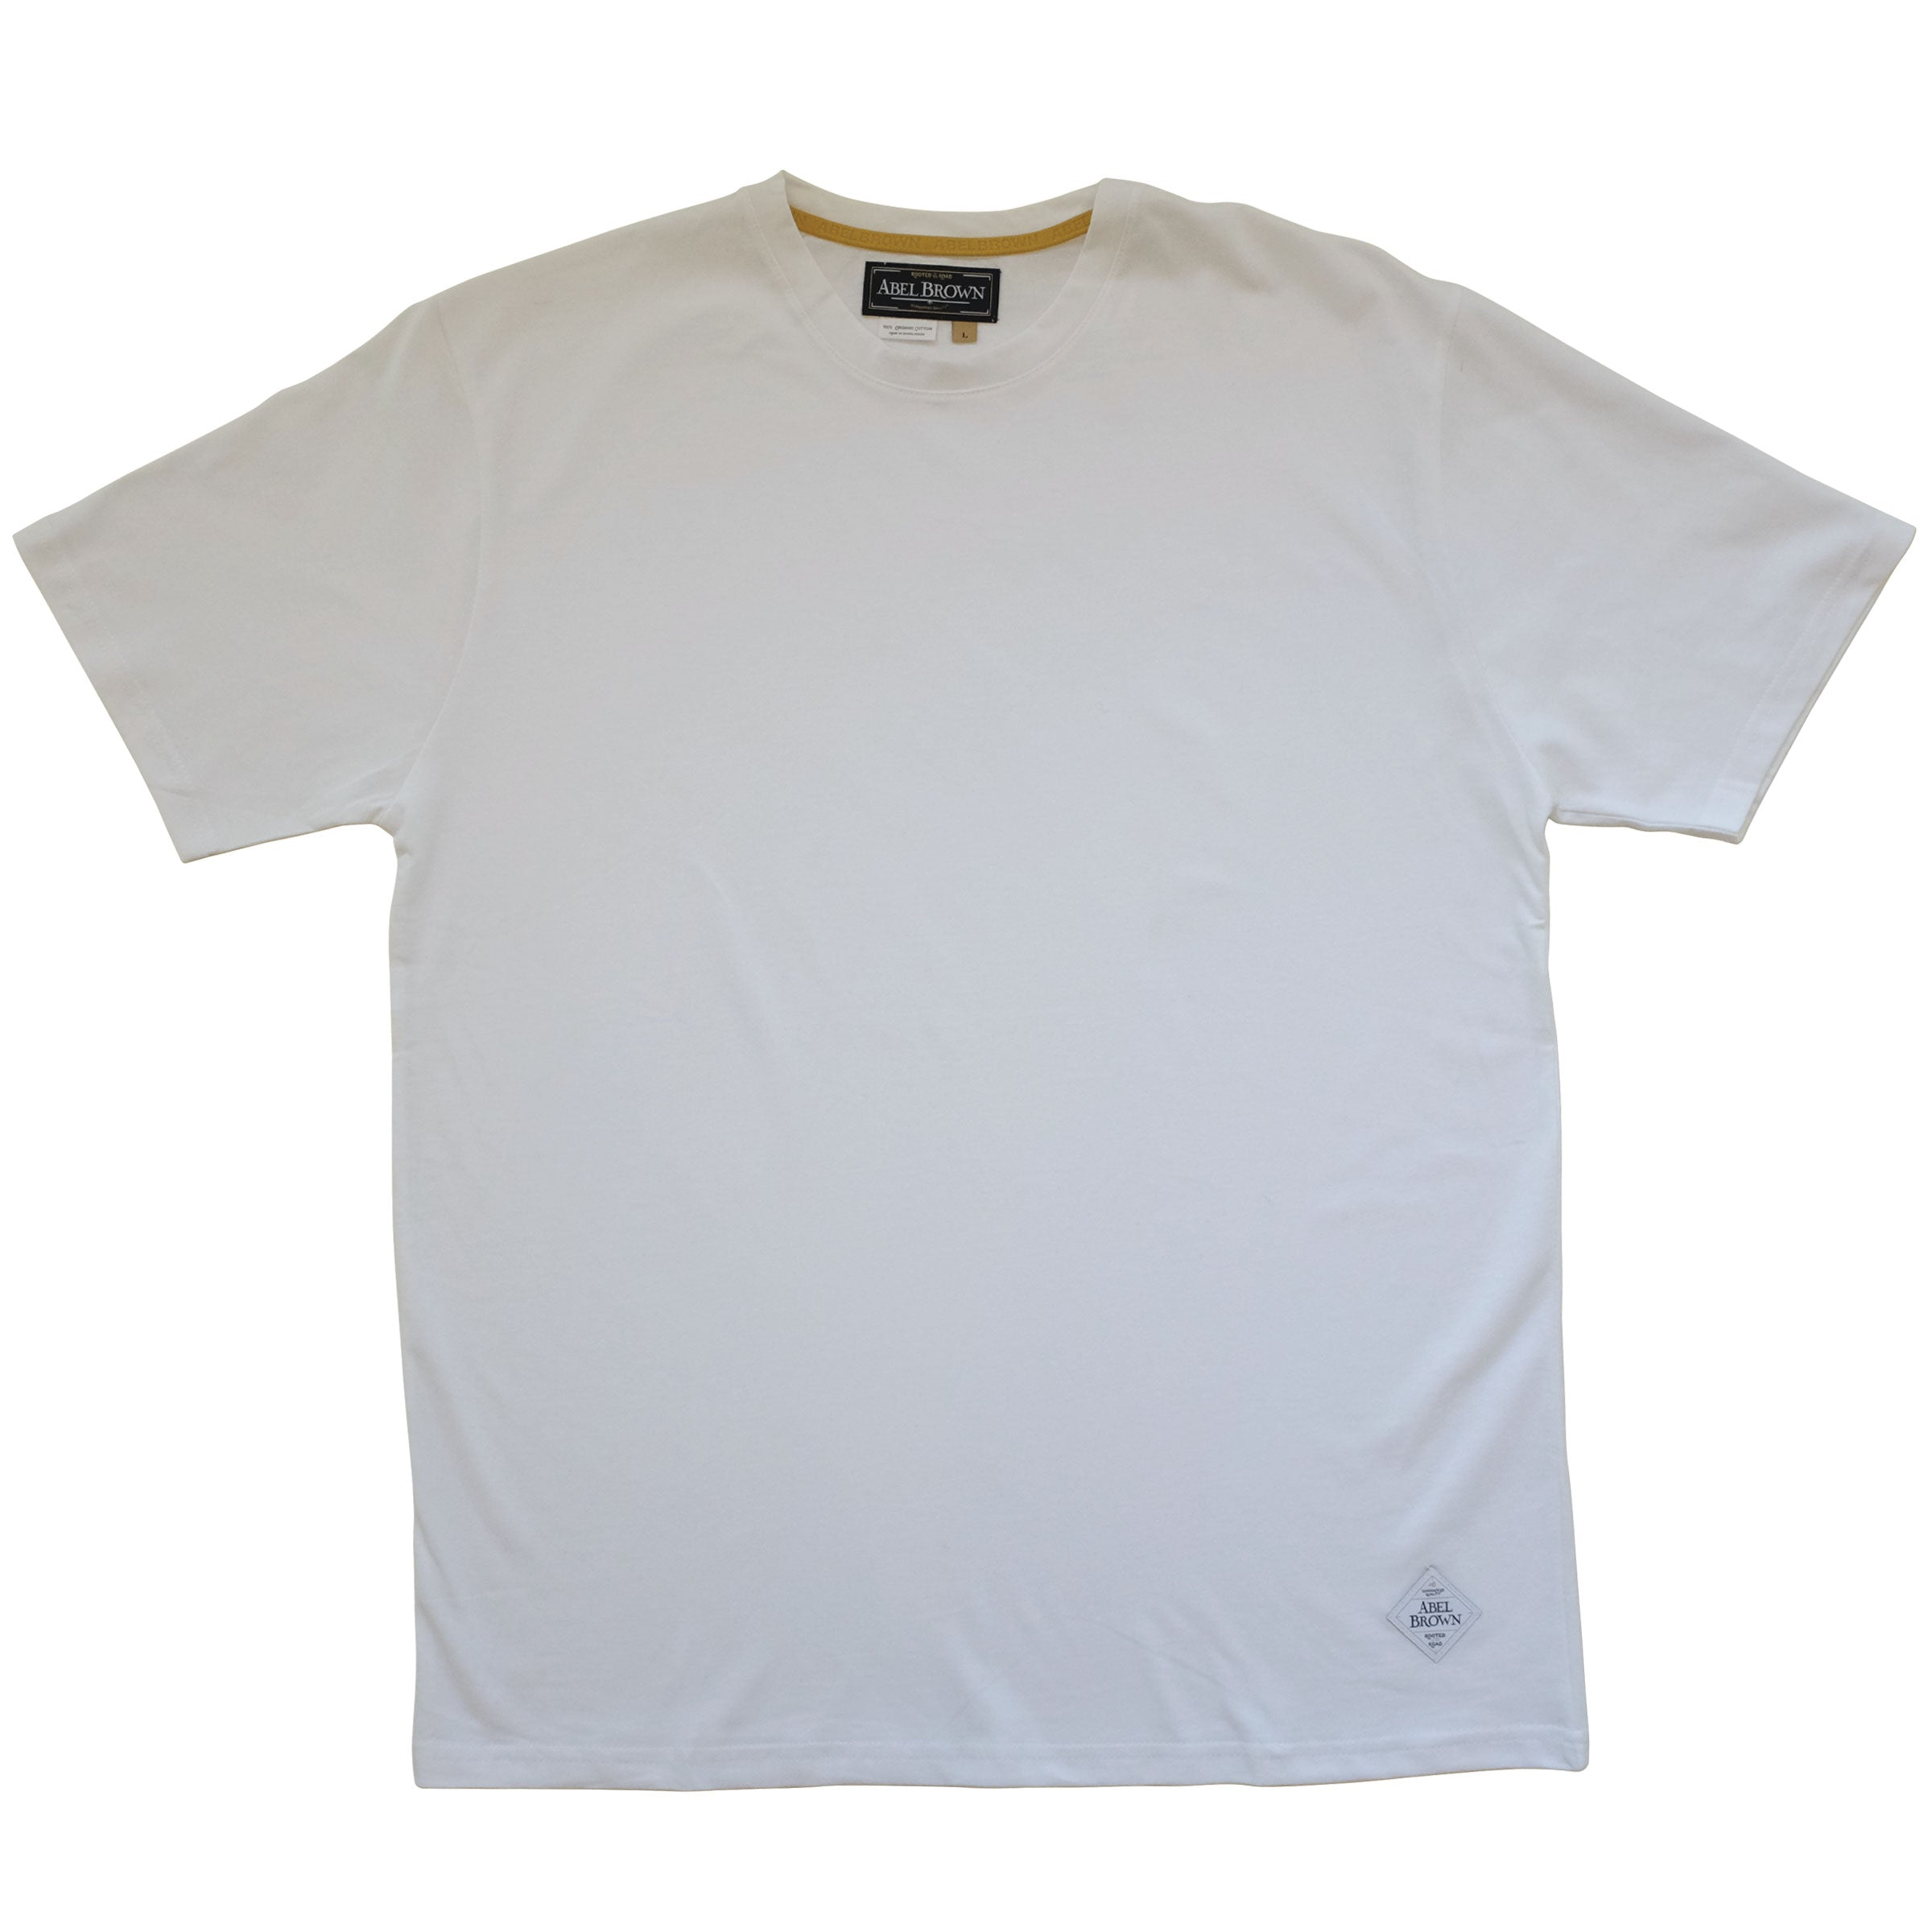 Standard Issue Tee